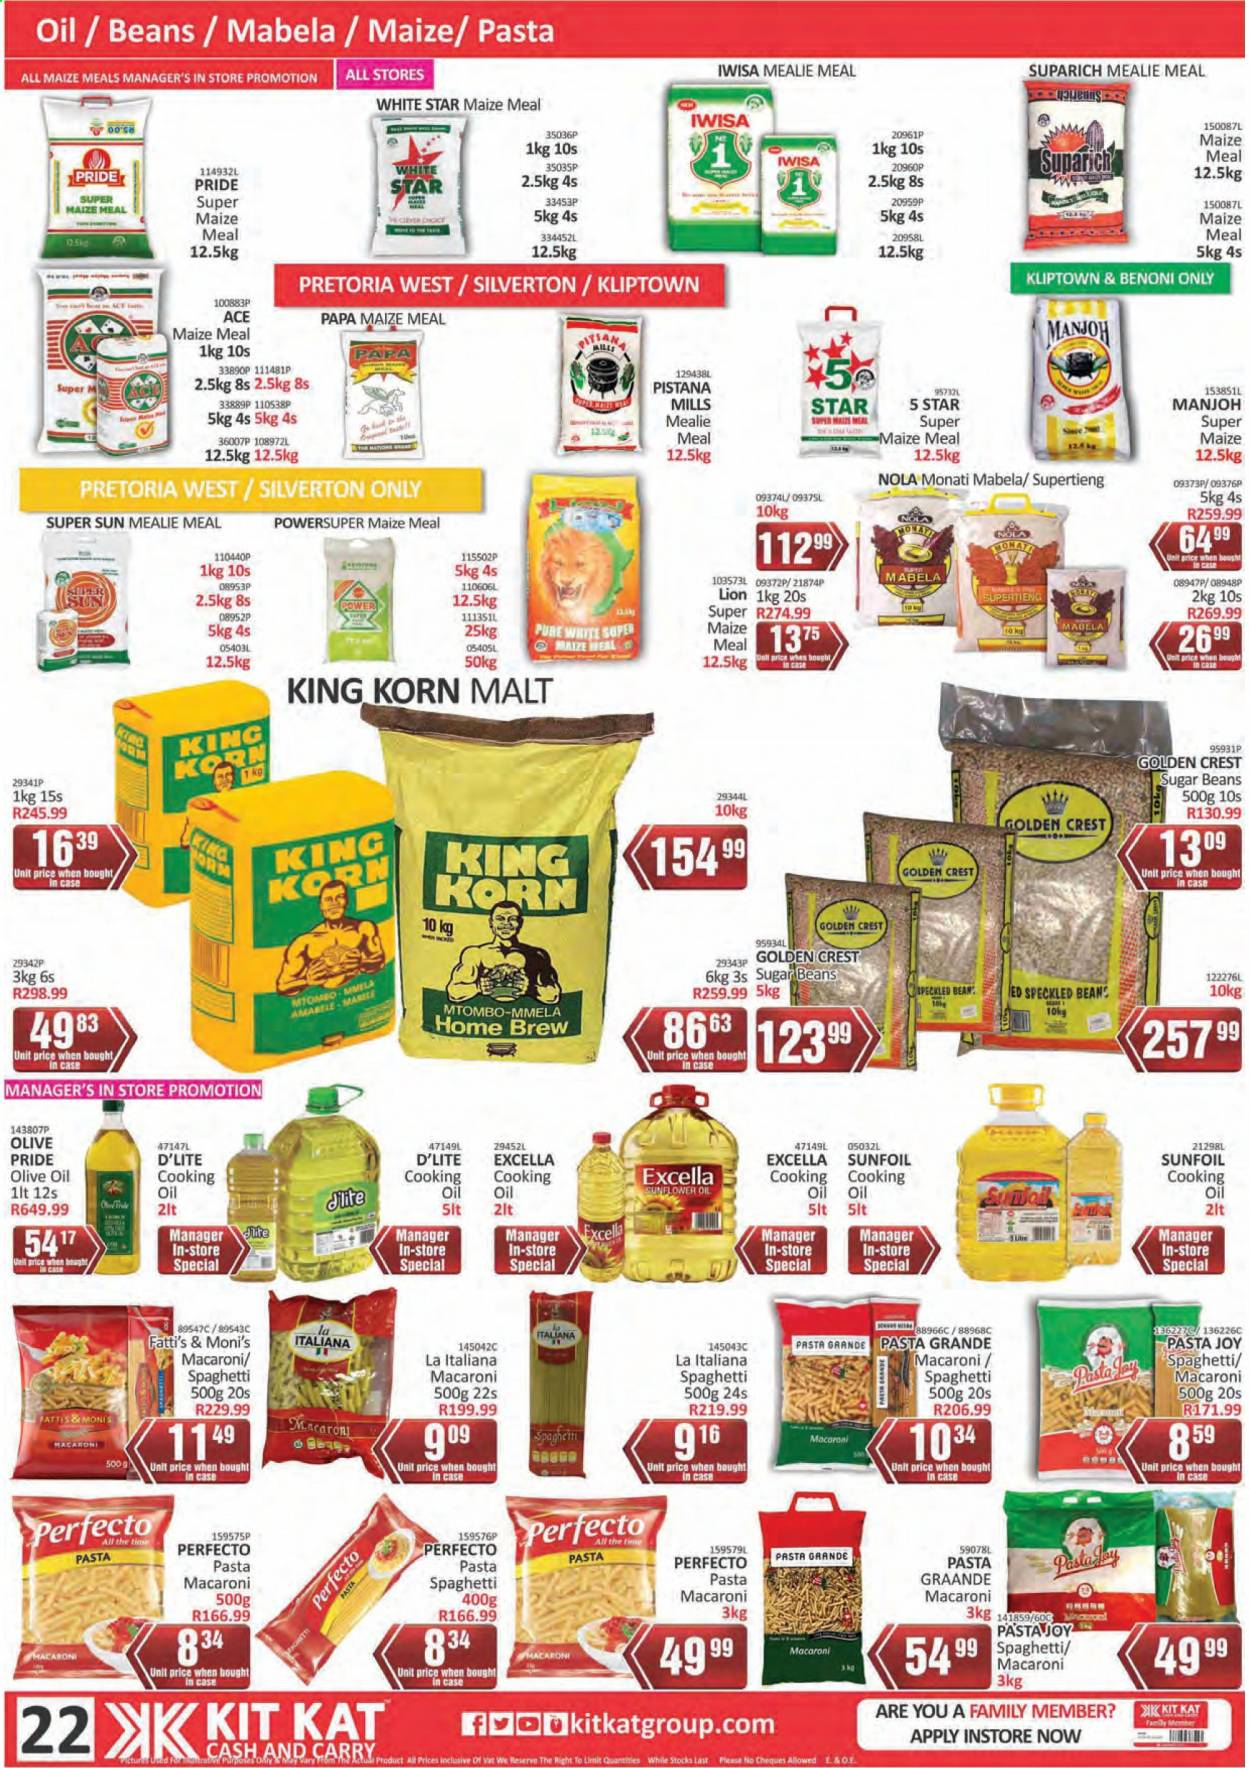 Kit Kat Cash & Carry catalogue  - 02.11.2021 - 05.12.2021. Page 22.